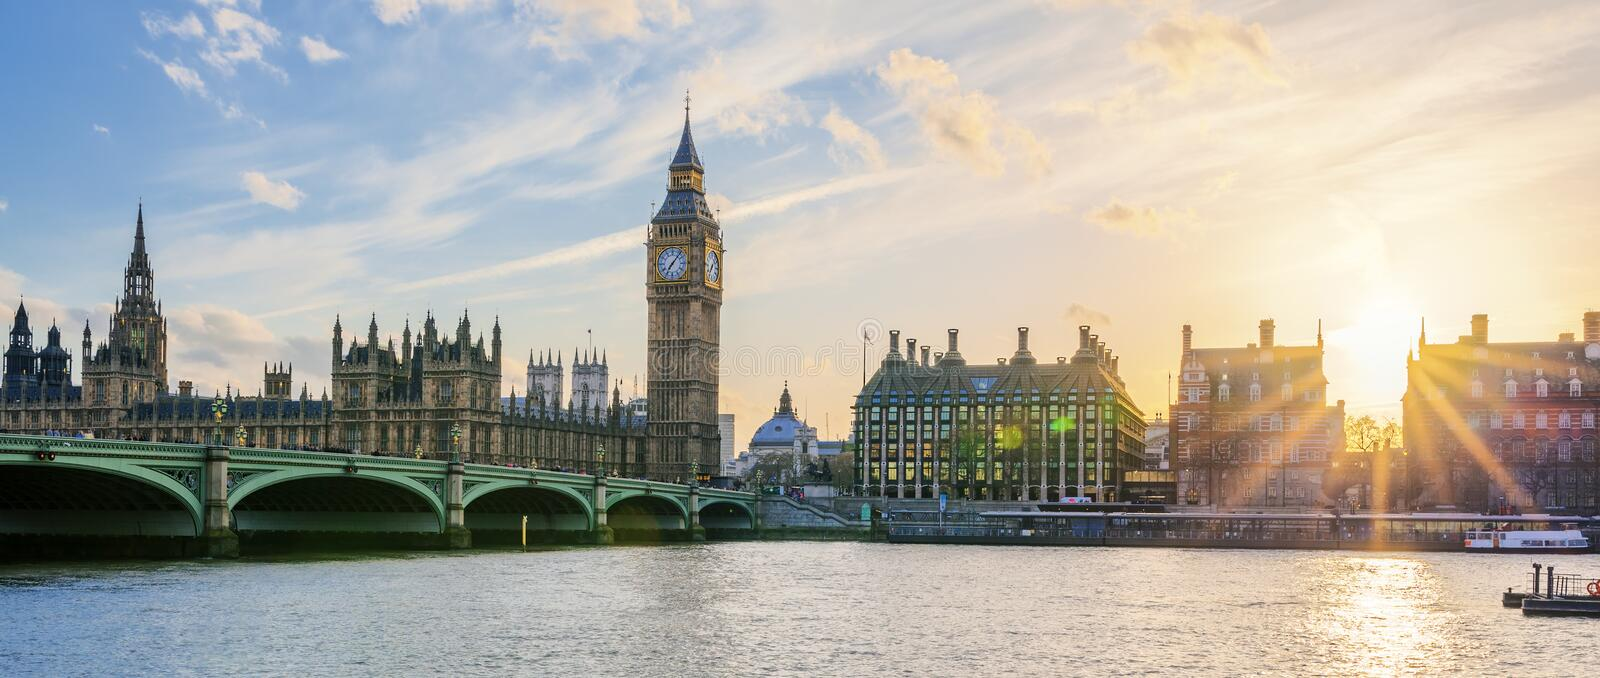 Panoramic view of Big Ben clock tower in London at sunset. UK royalty free stock photo